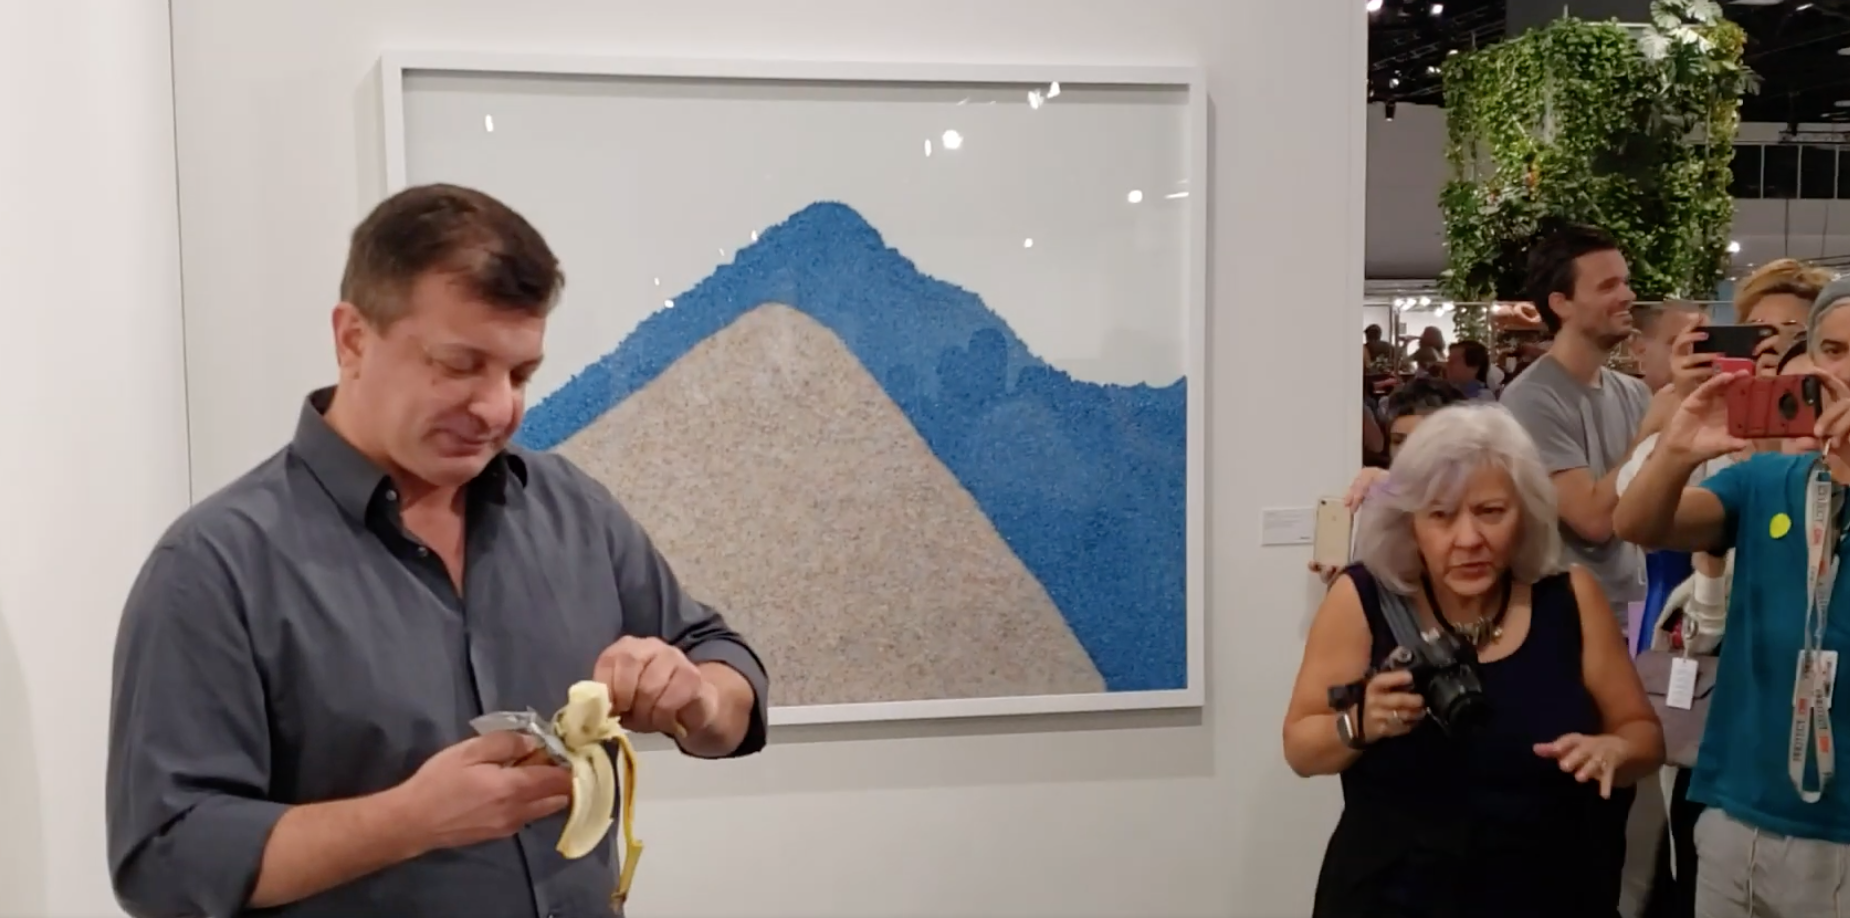 Картинки по запросу Man arrested after eating $120,000 banana from Art Basel exhibition